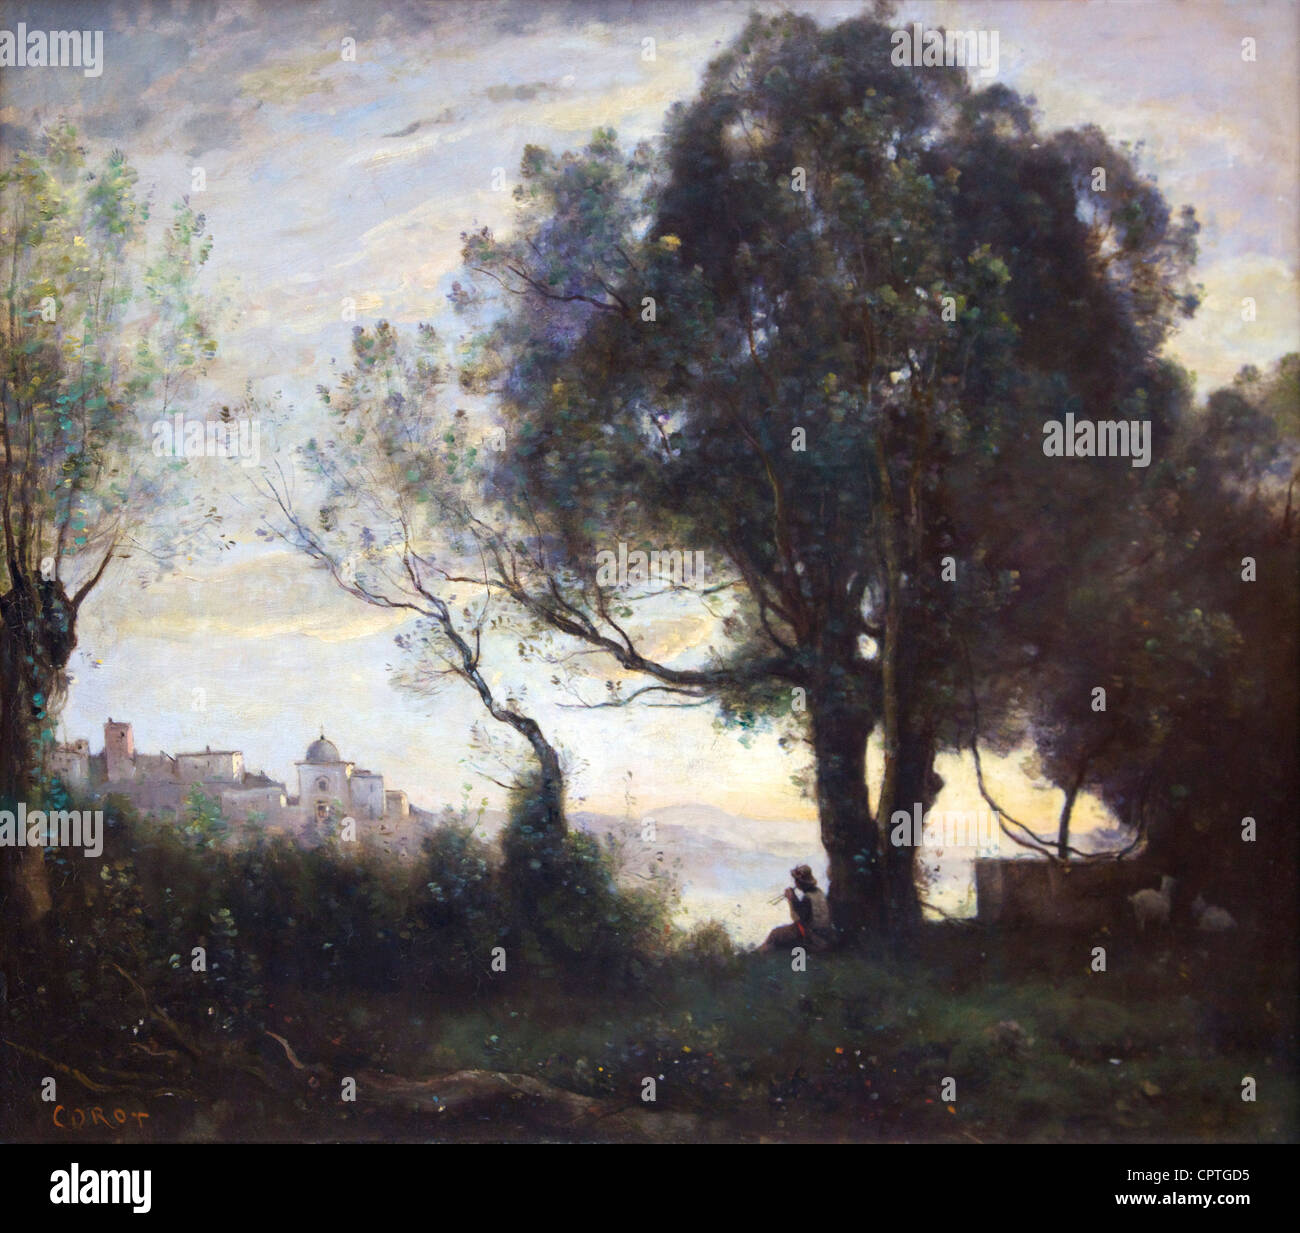 Recollection of Castelgandolfo, by Camille Corot, 1866, Musee du Louvre Museum, Paris, France, Europe, EU - Stock Image